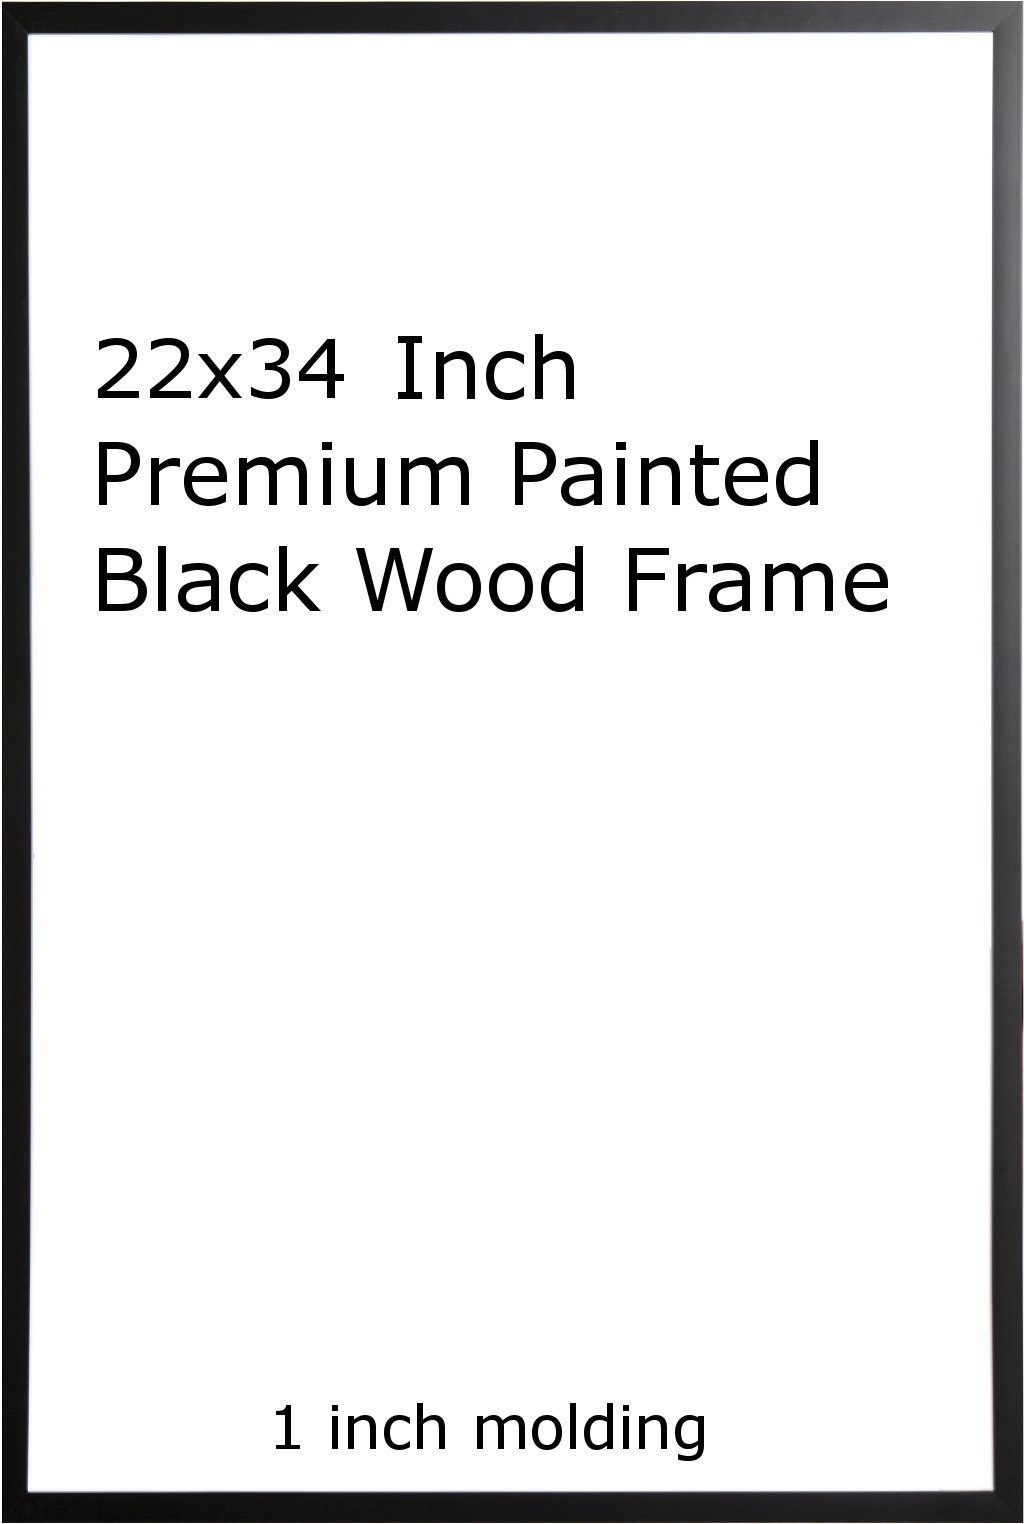 Four(4) Wood Painted Black Poster Frame 22x34 or 34 x 22